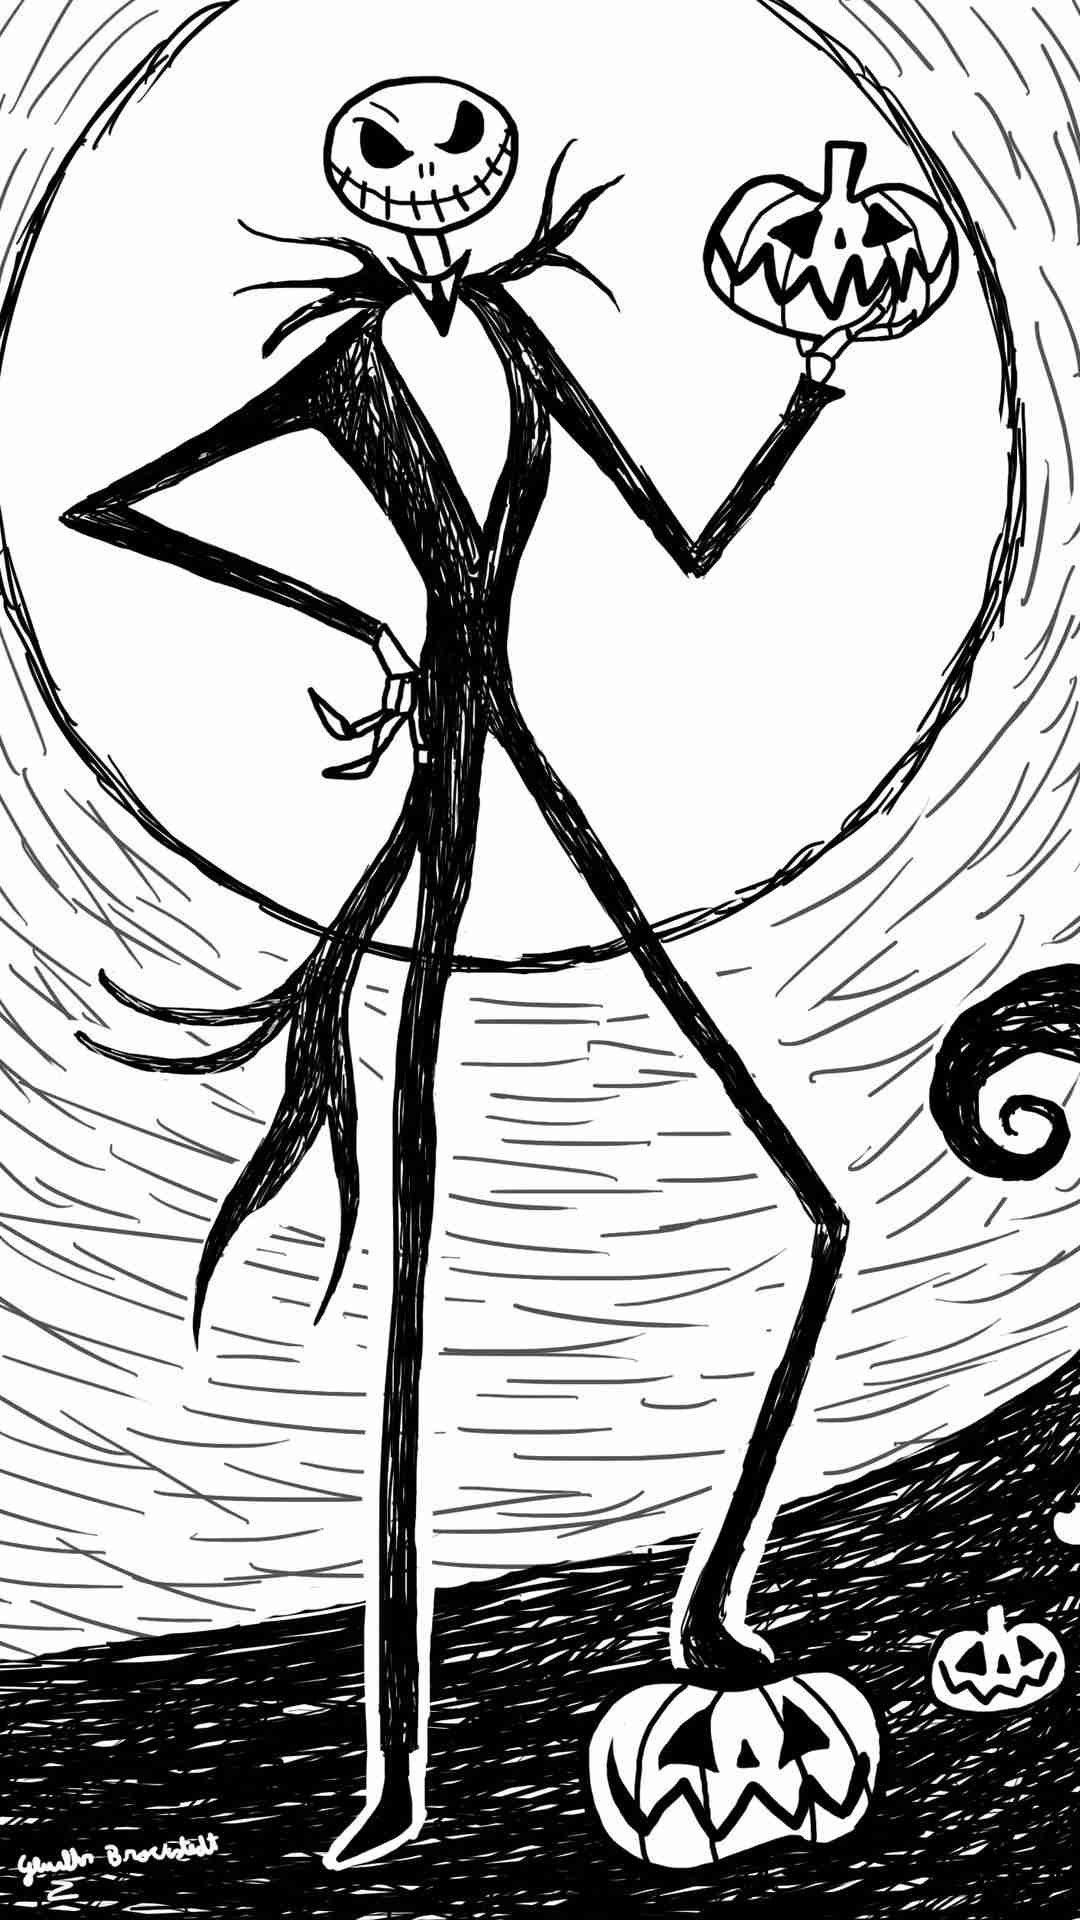 Scary Nightmare Before Christmas Wallpaper Mobile Nightmare Before Christmas Wallpaper Iphone 6 Plus Wallpaper Nightmare Before Christmas